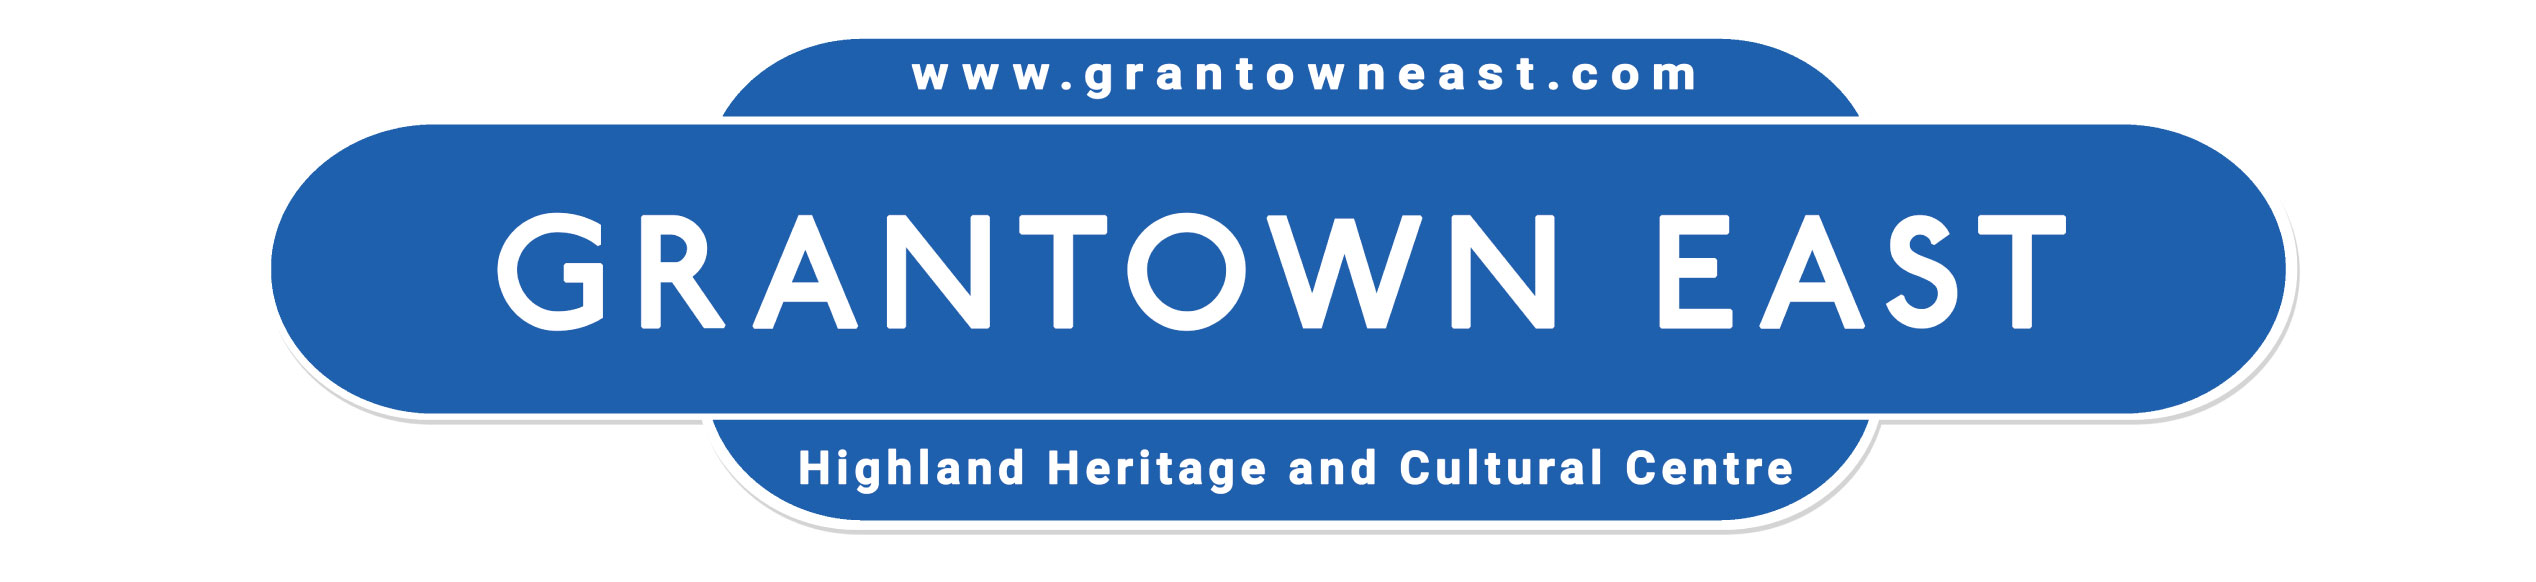 Grantown East Highland Heritage and Cultural Centre